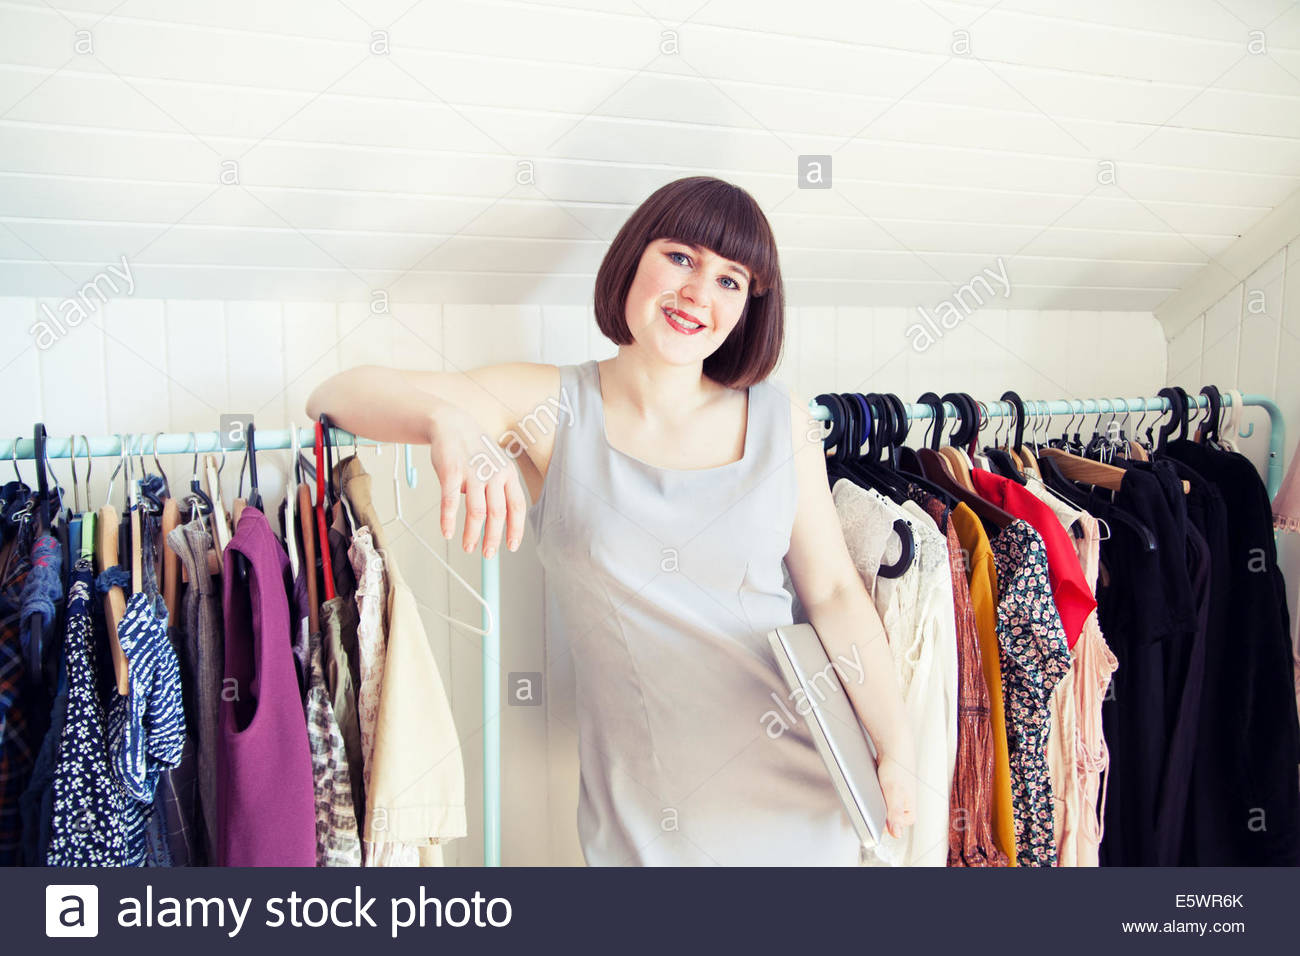 Portrait of young woman leaning on clothes rail in dressing room - Stock Image